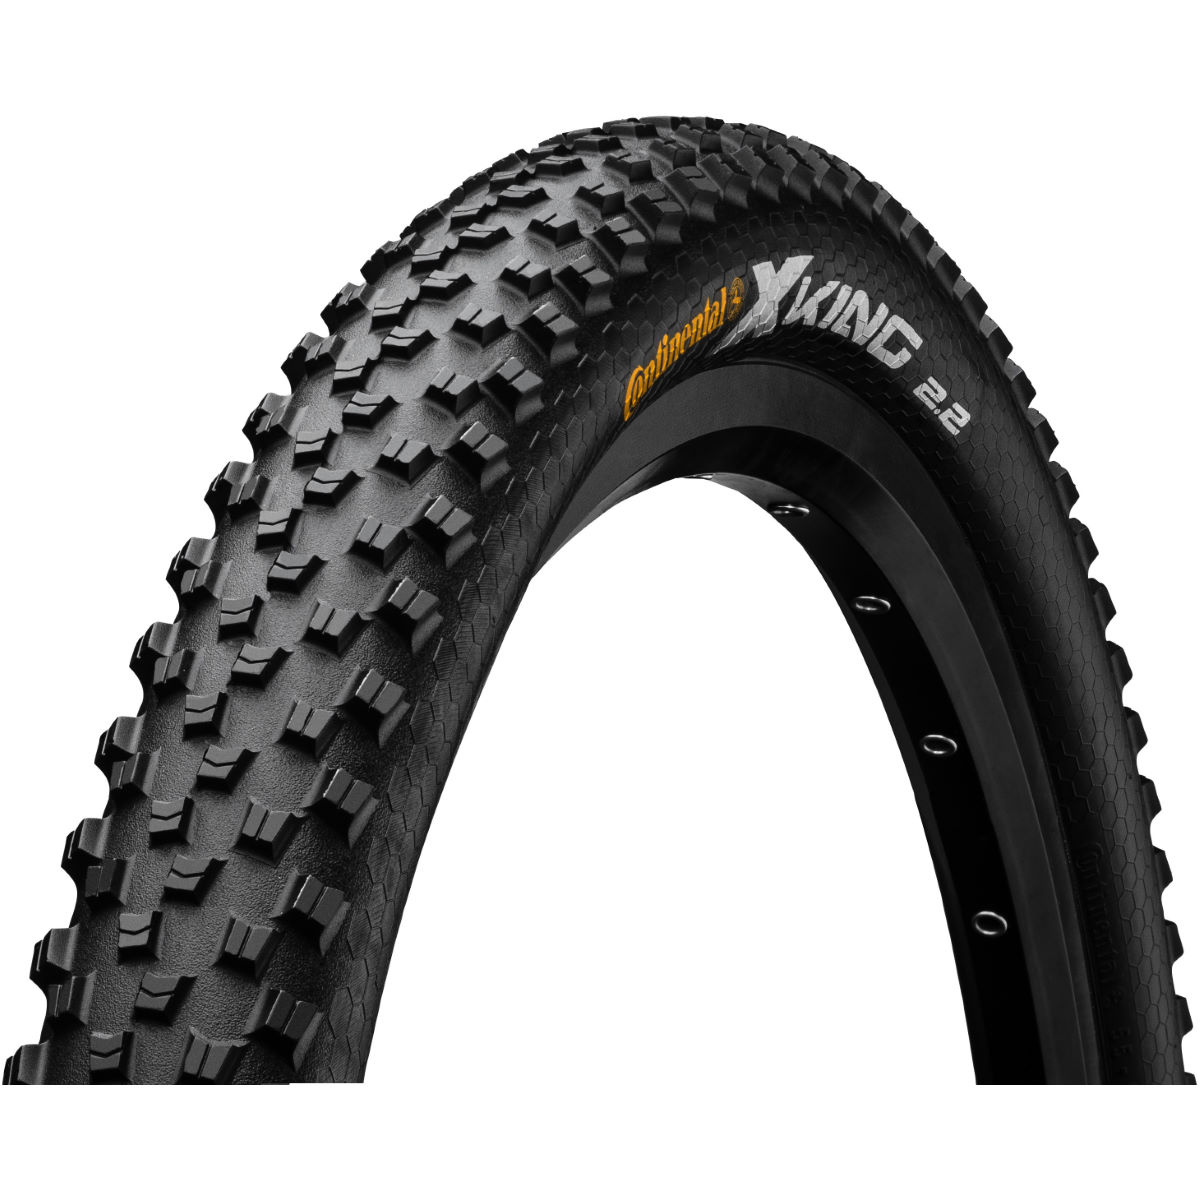 Pneu VTT Continental X King (souple, ProTection, 2018) - 2.2' 27.5'